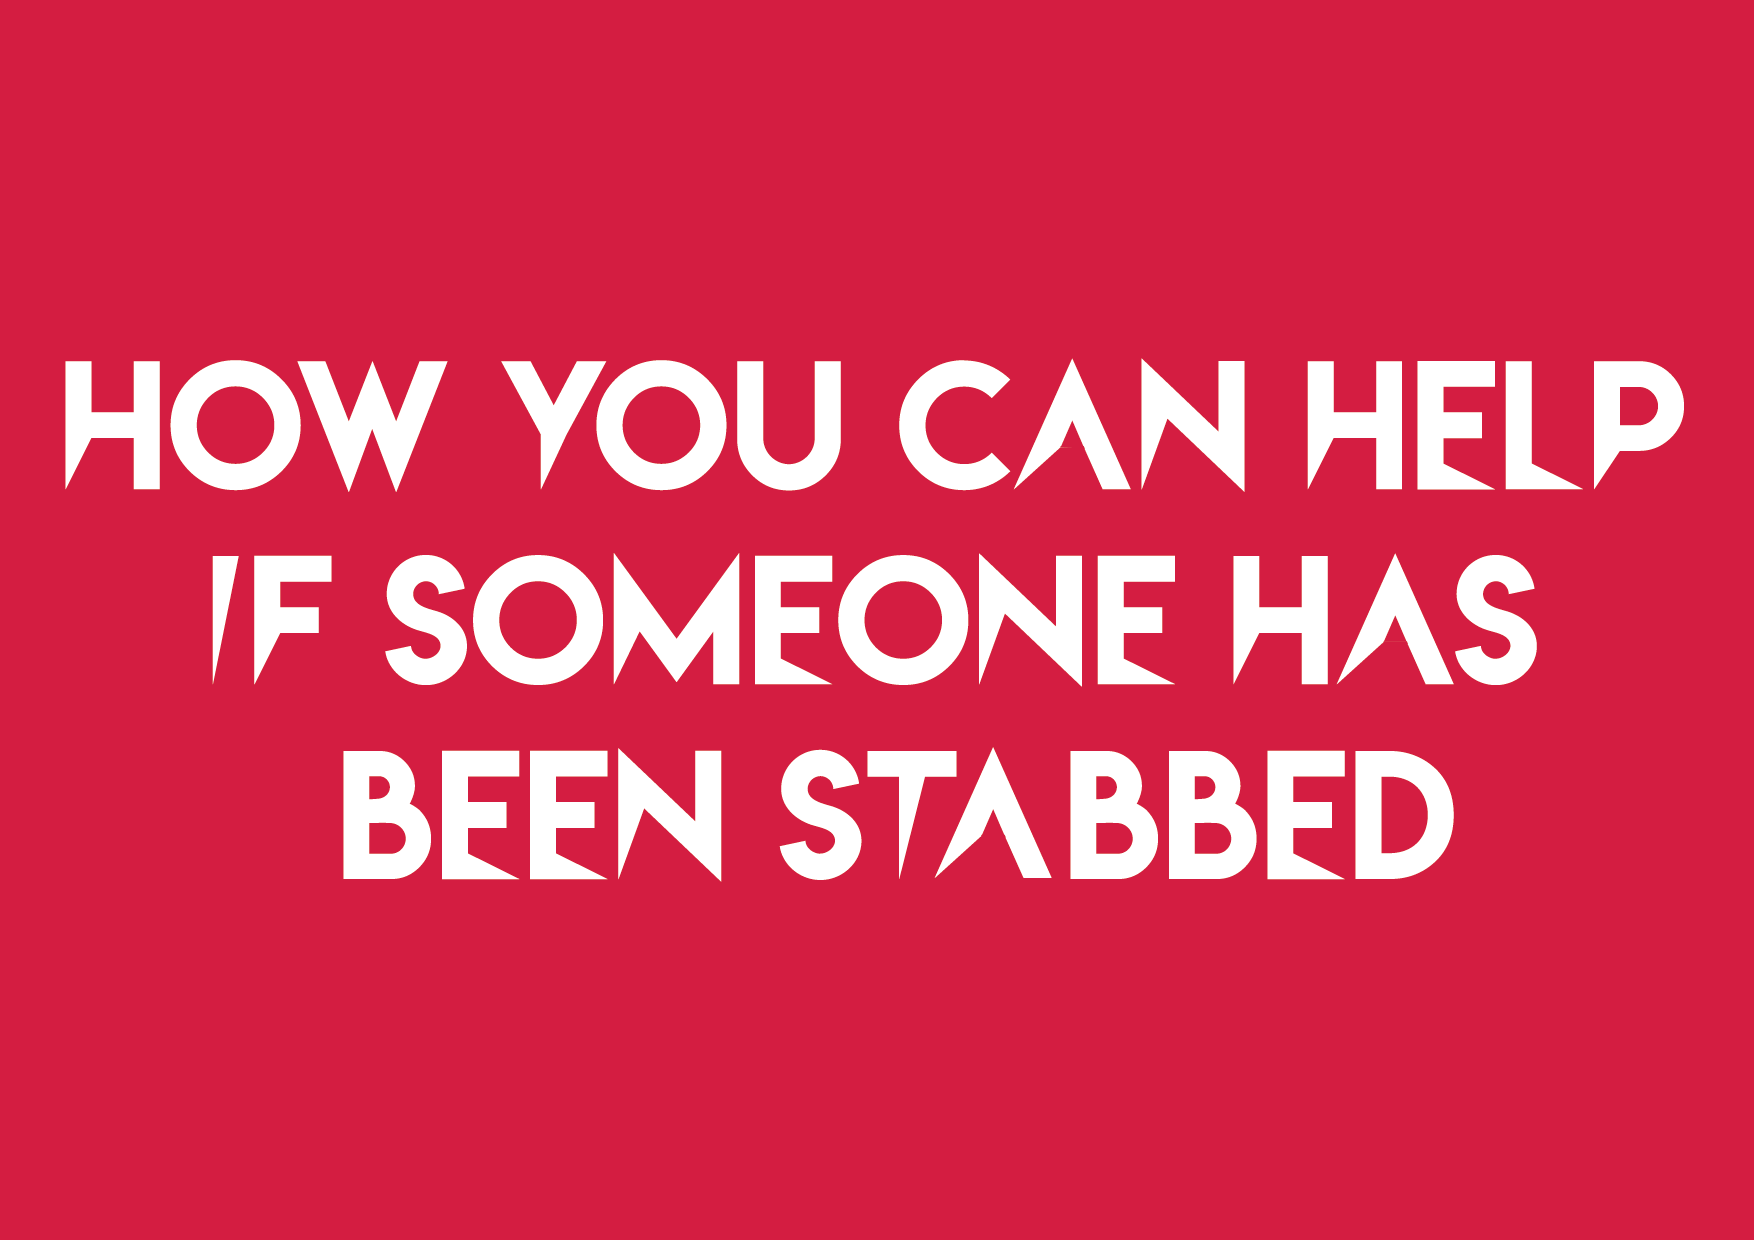 How You Can Help If Someone Has Been Stabbed